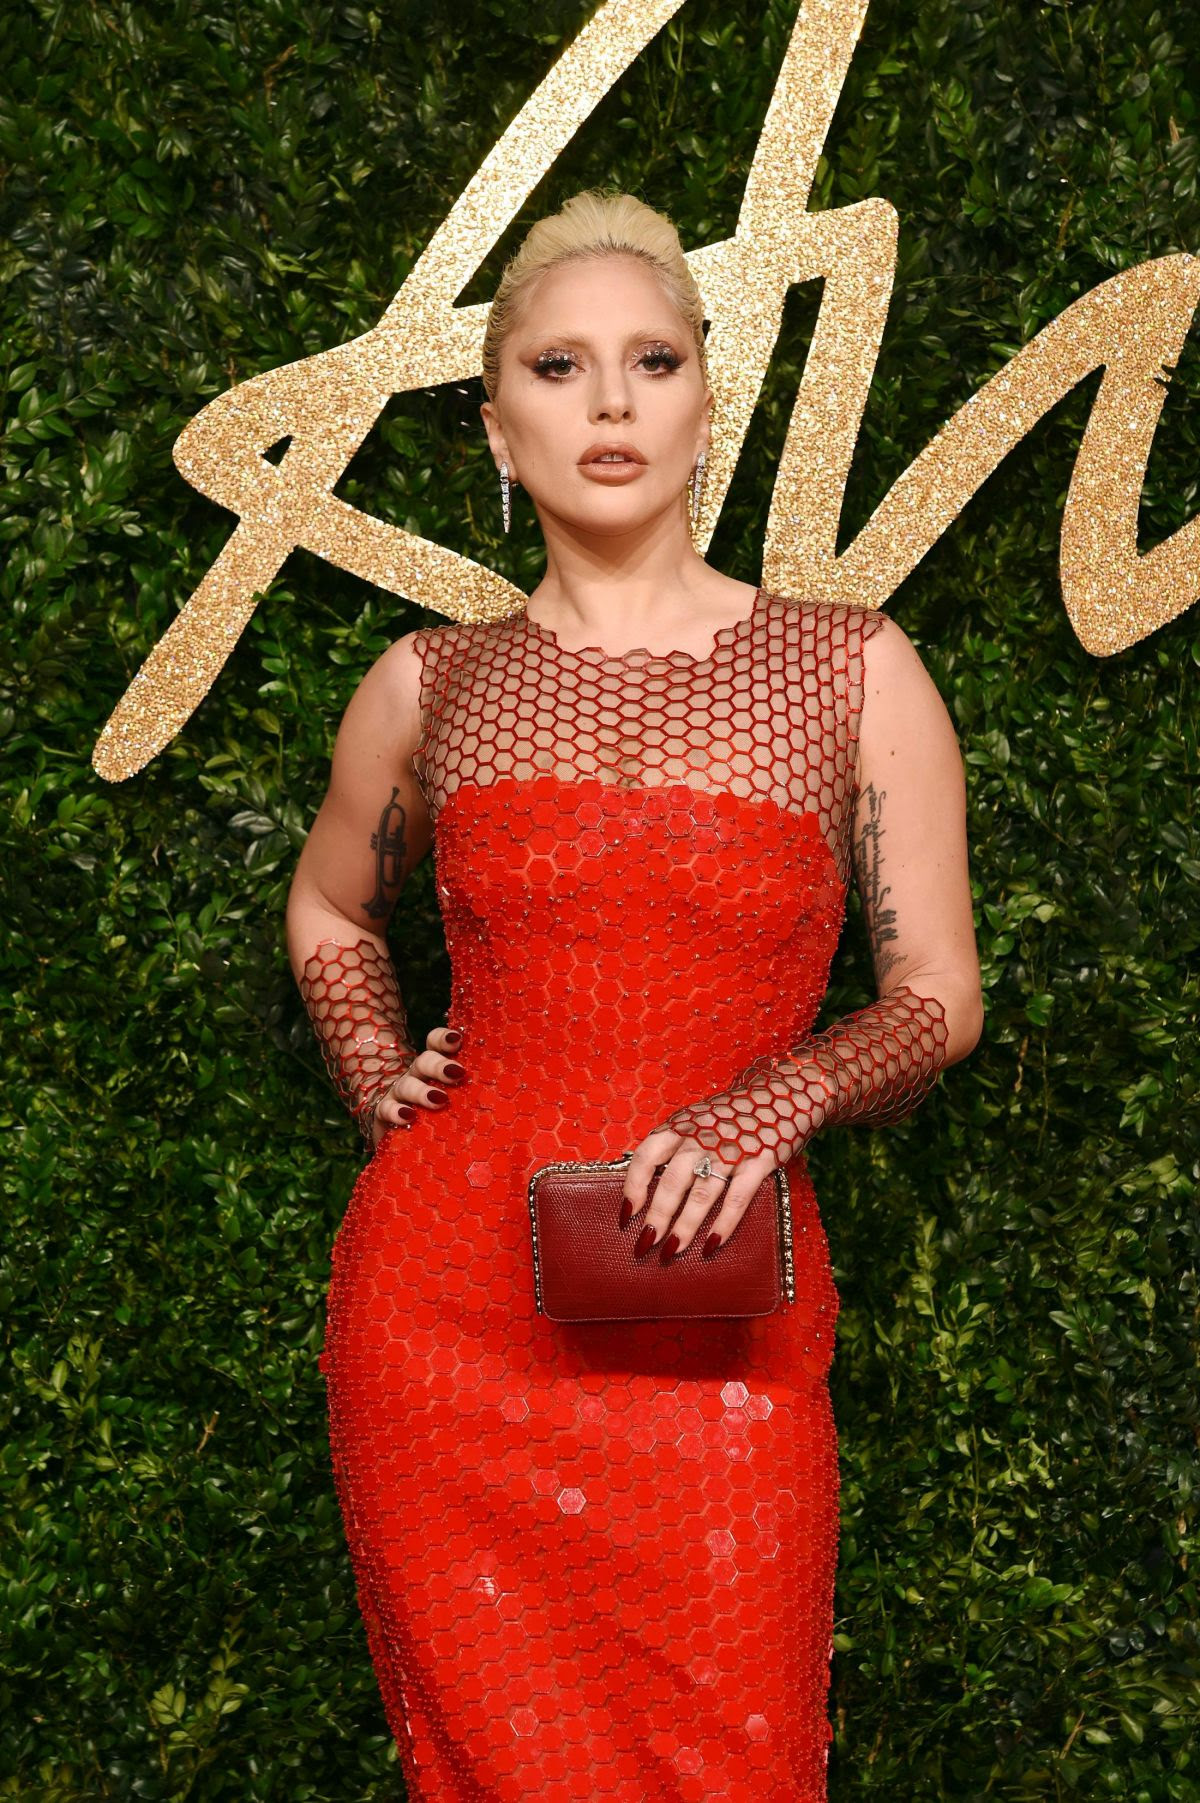 http://www.hawtcelebs.com/wp-content/uploads/2015/11/lady-gaga-at-2015-british-fashion-awards-in-london-11-23-2015_1.jpg